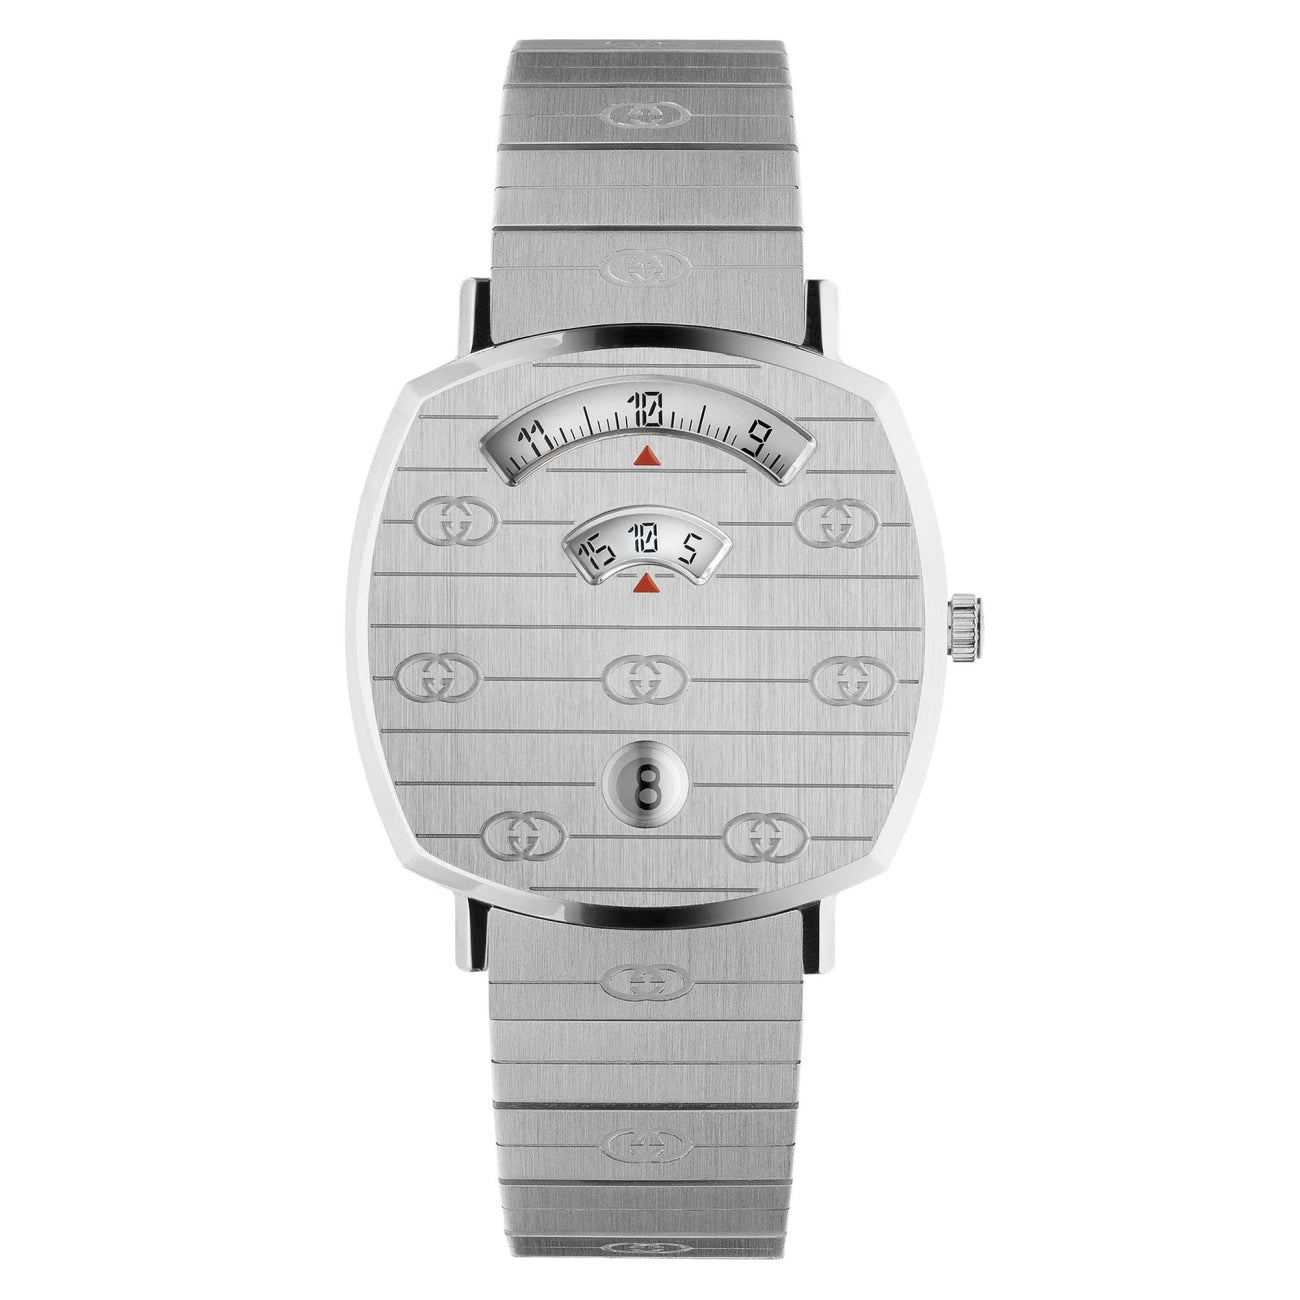 Gucci Watches - Grip Watch 35mm | Manfredi Jewels